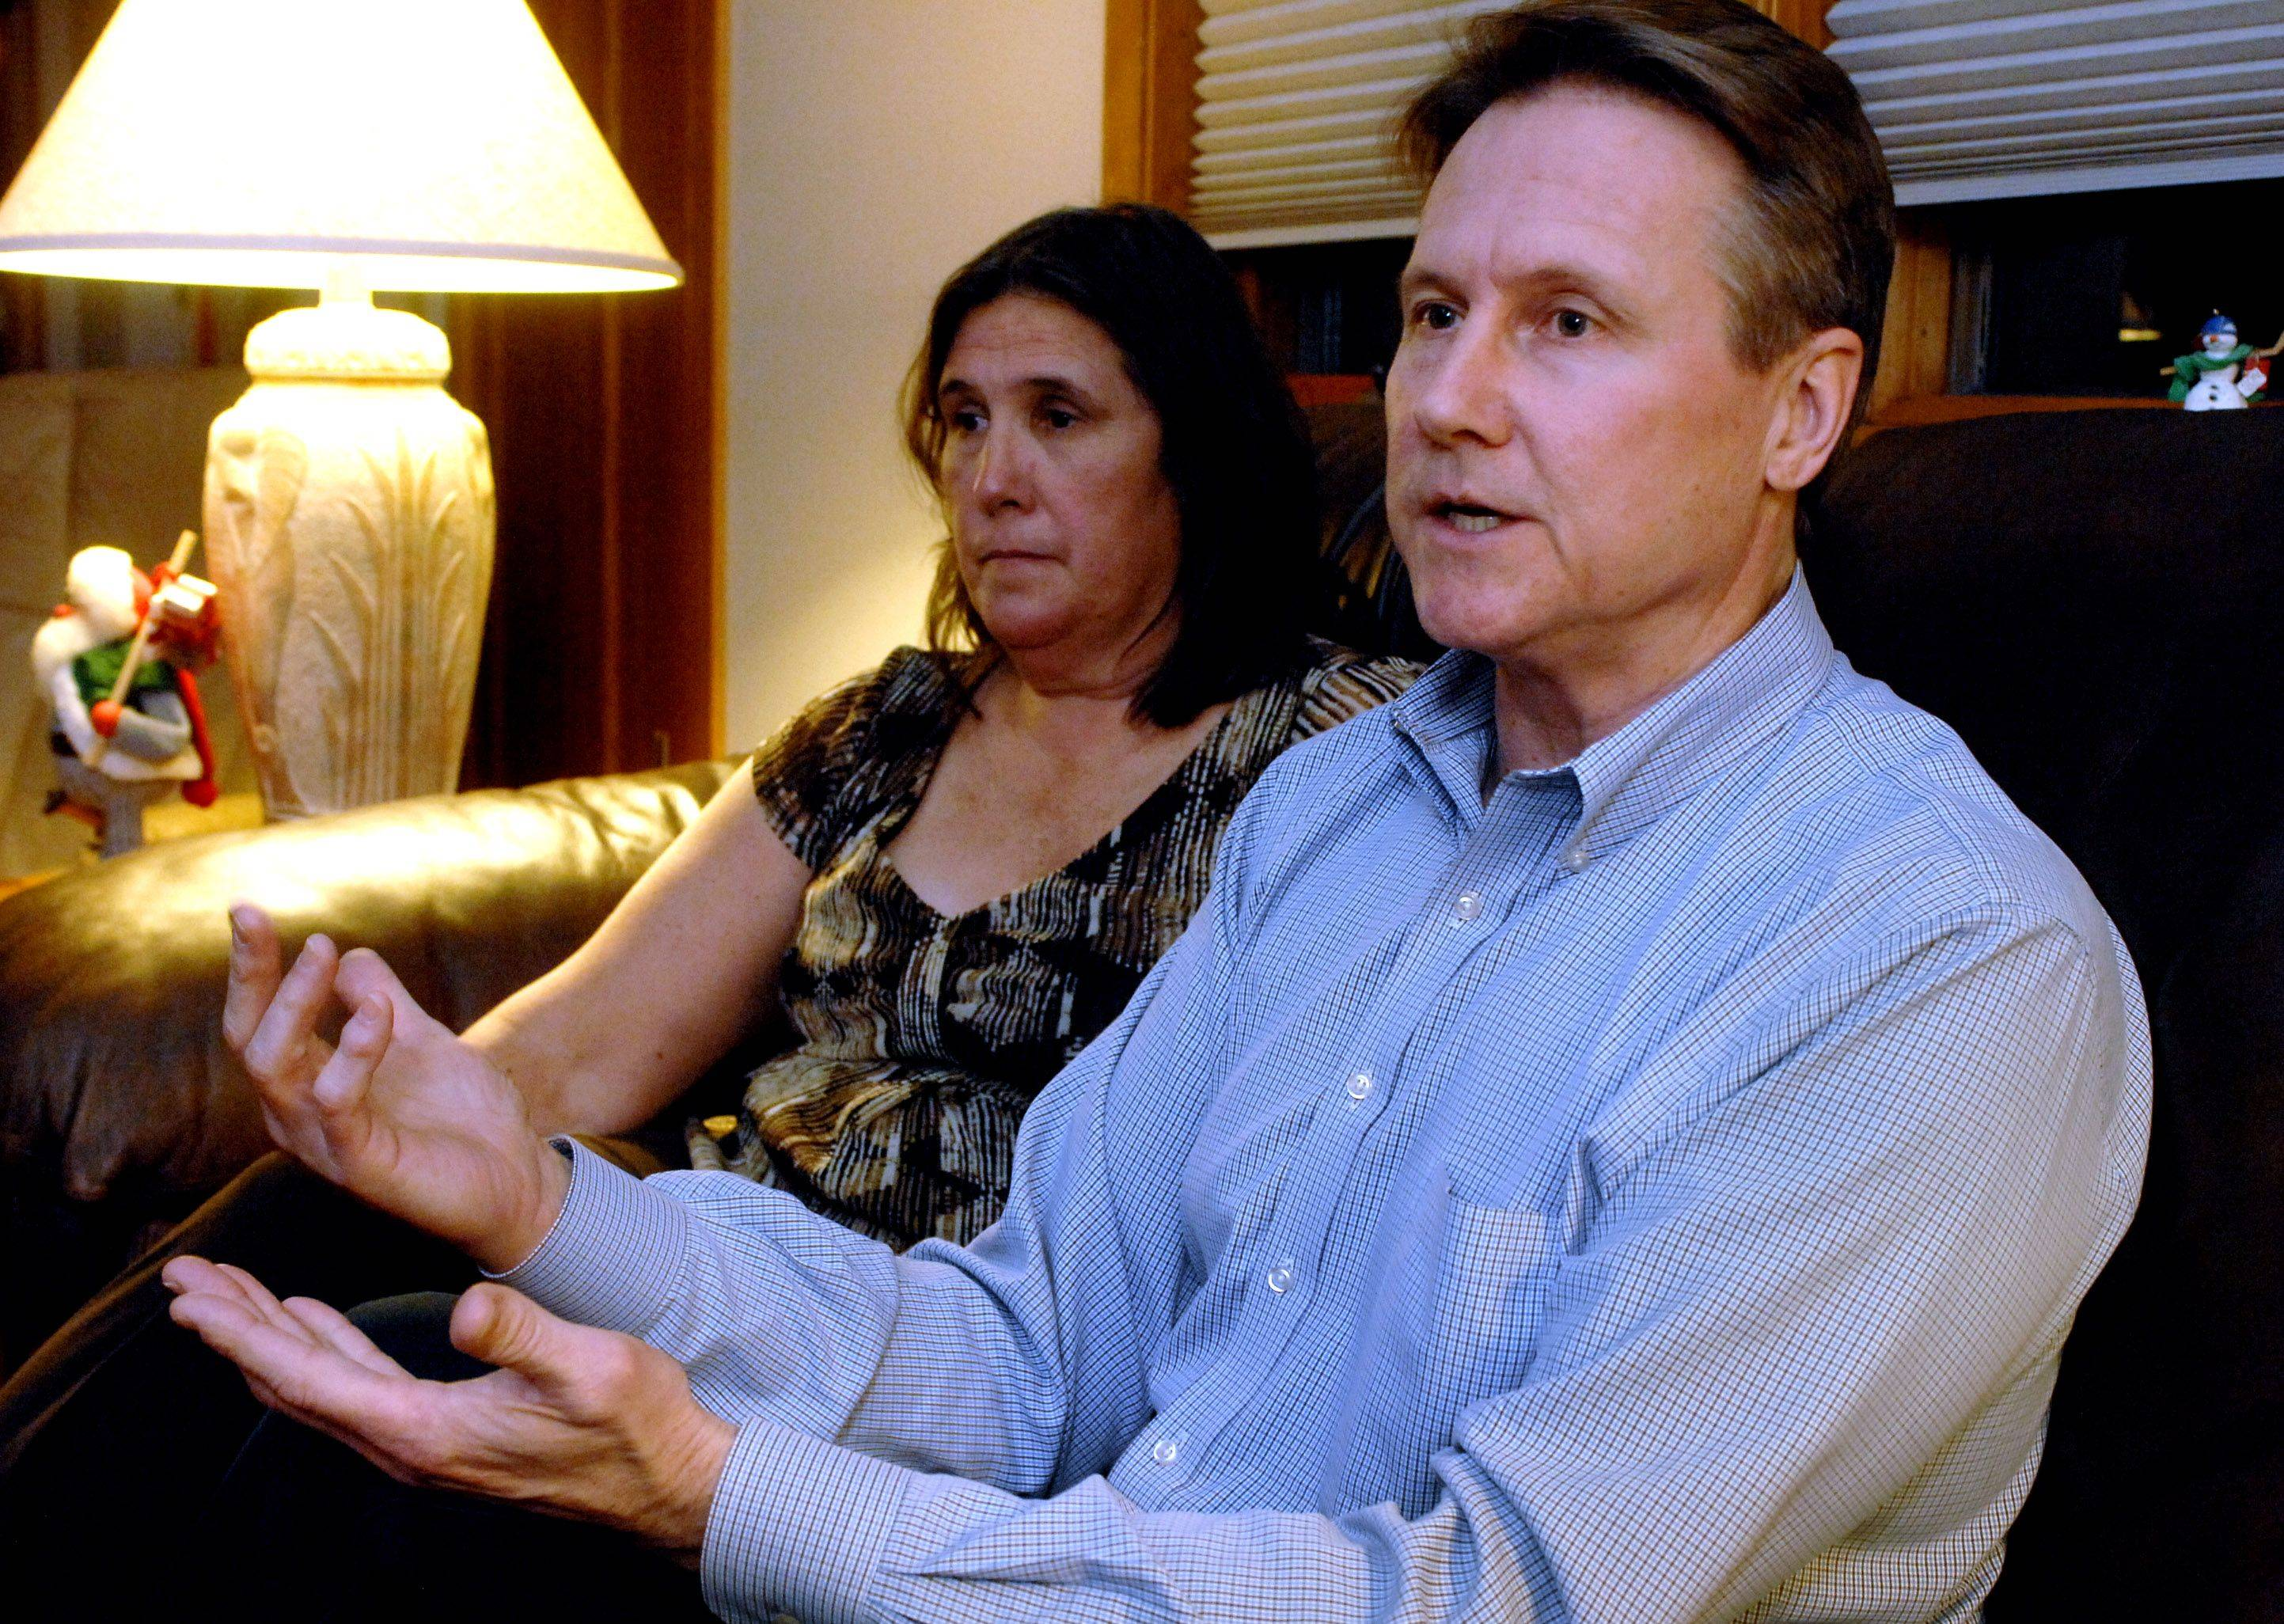 Steve Kotlinski, right, of Hawthorn Woods talks about the lawsuit he filed for being Tasered by Mundelein police officers in January. His wife, Jean, listens in Wednesday night.